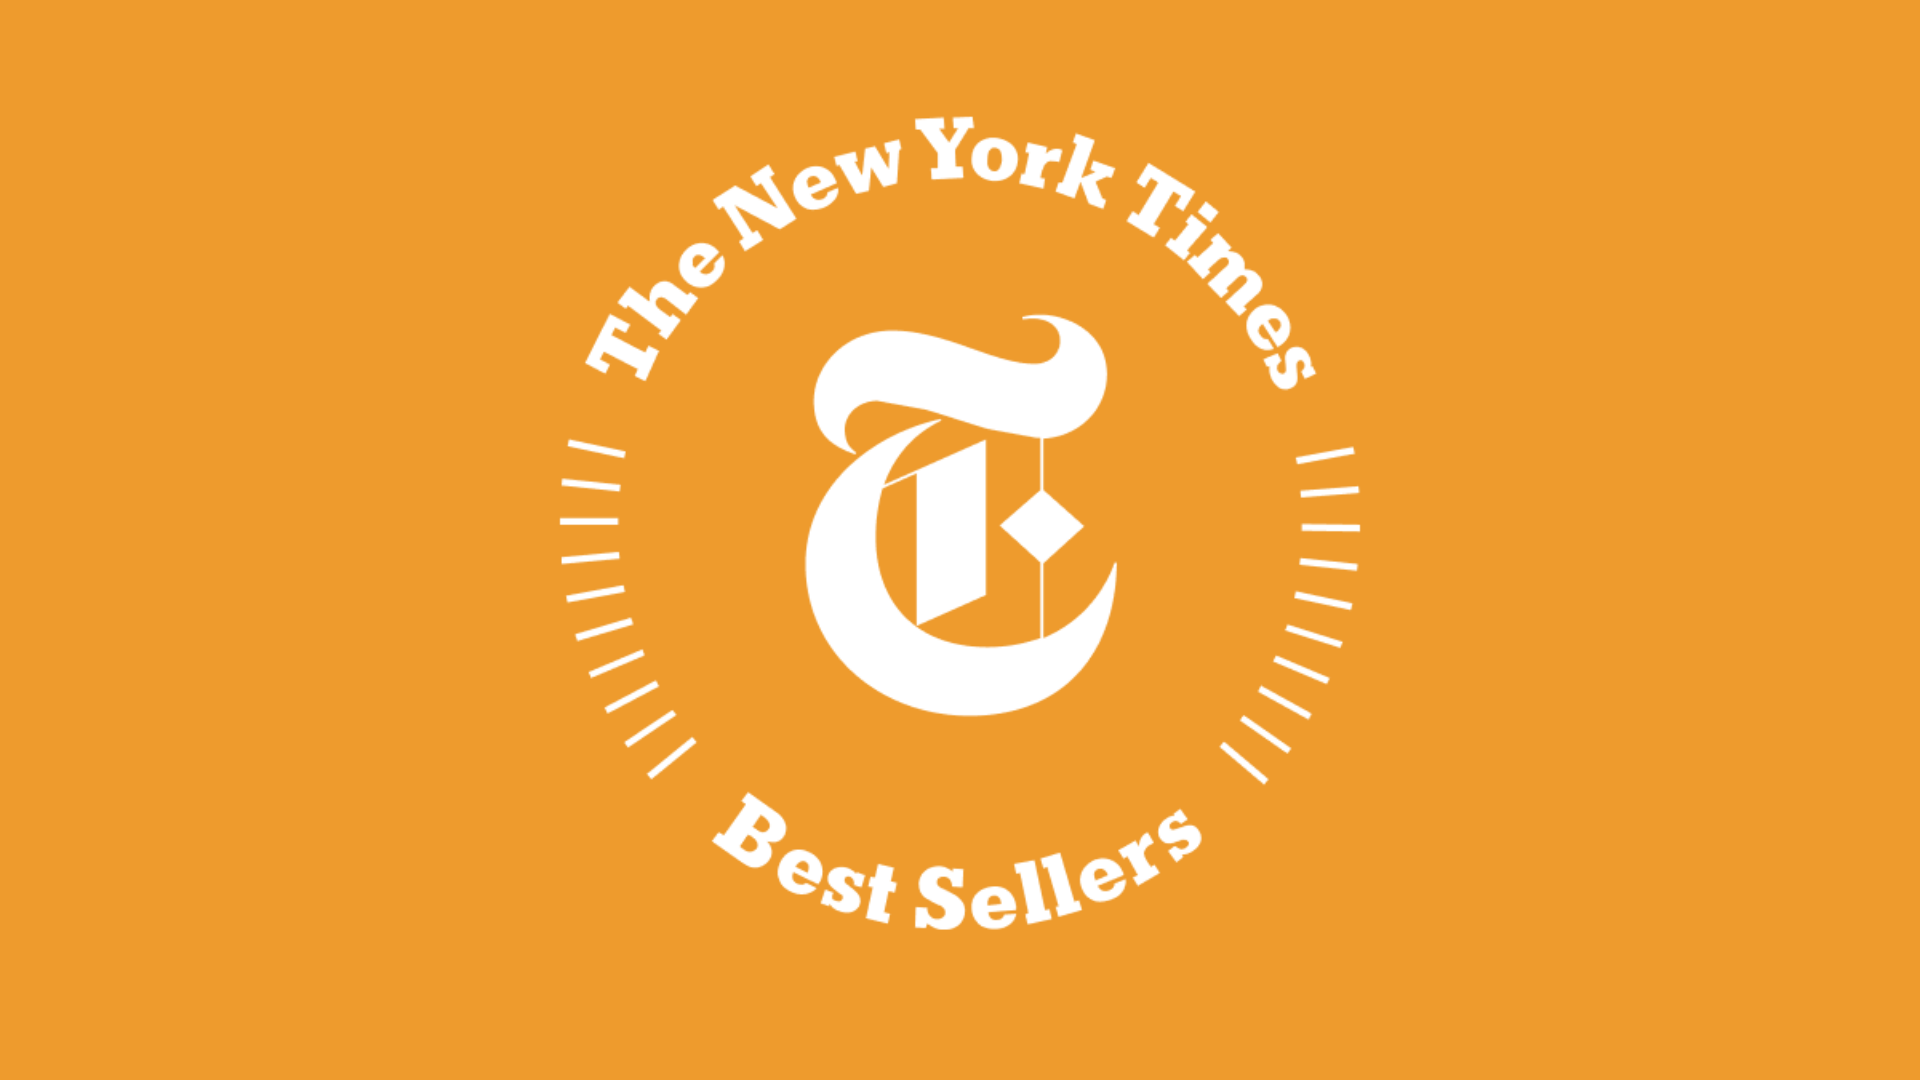 New York Times Bestsellers Book Marketing Tips